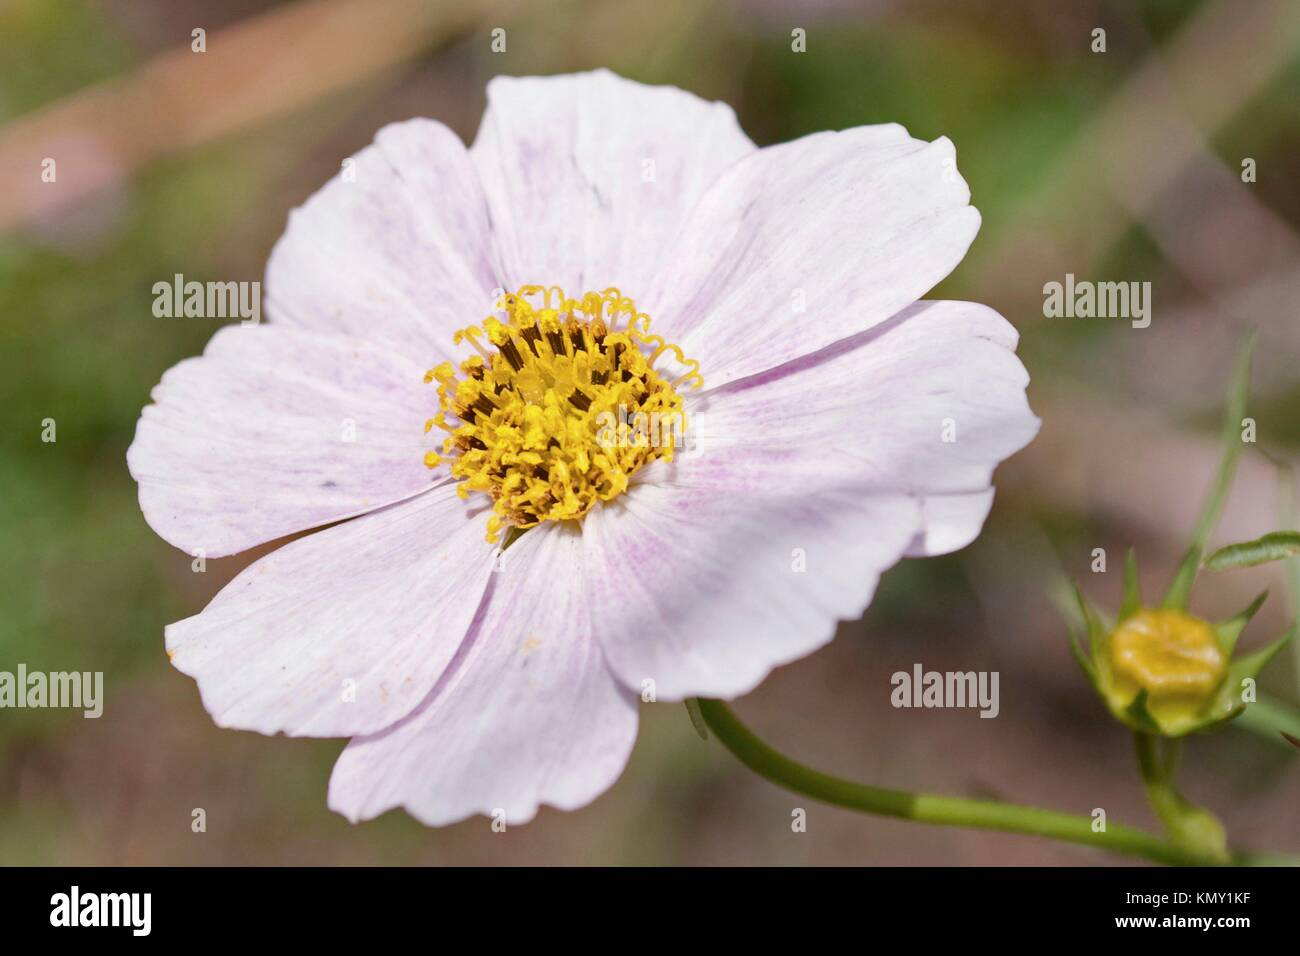 Cosmo flower stock photos cosmo flower stock images alamy a white cosmo bloom with pink speckles stock image mightylinksfo